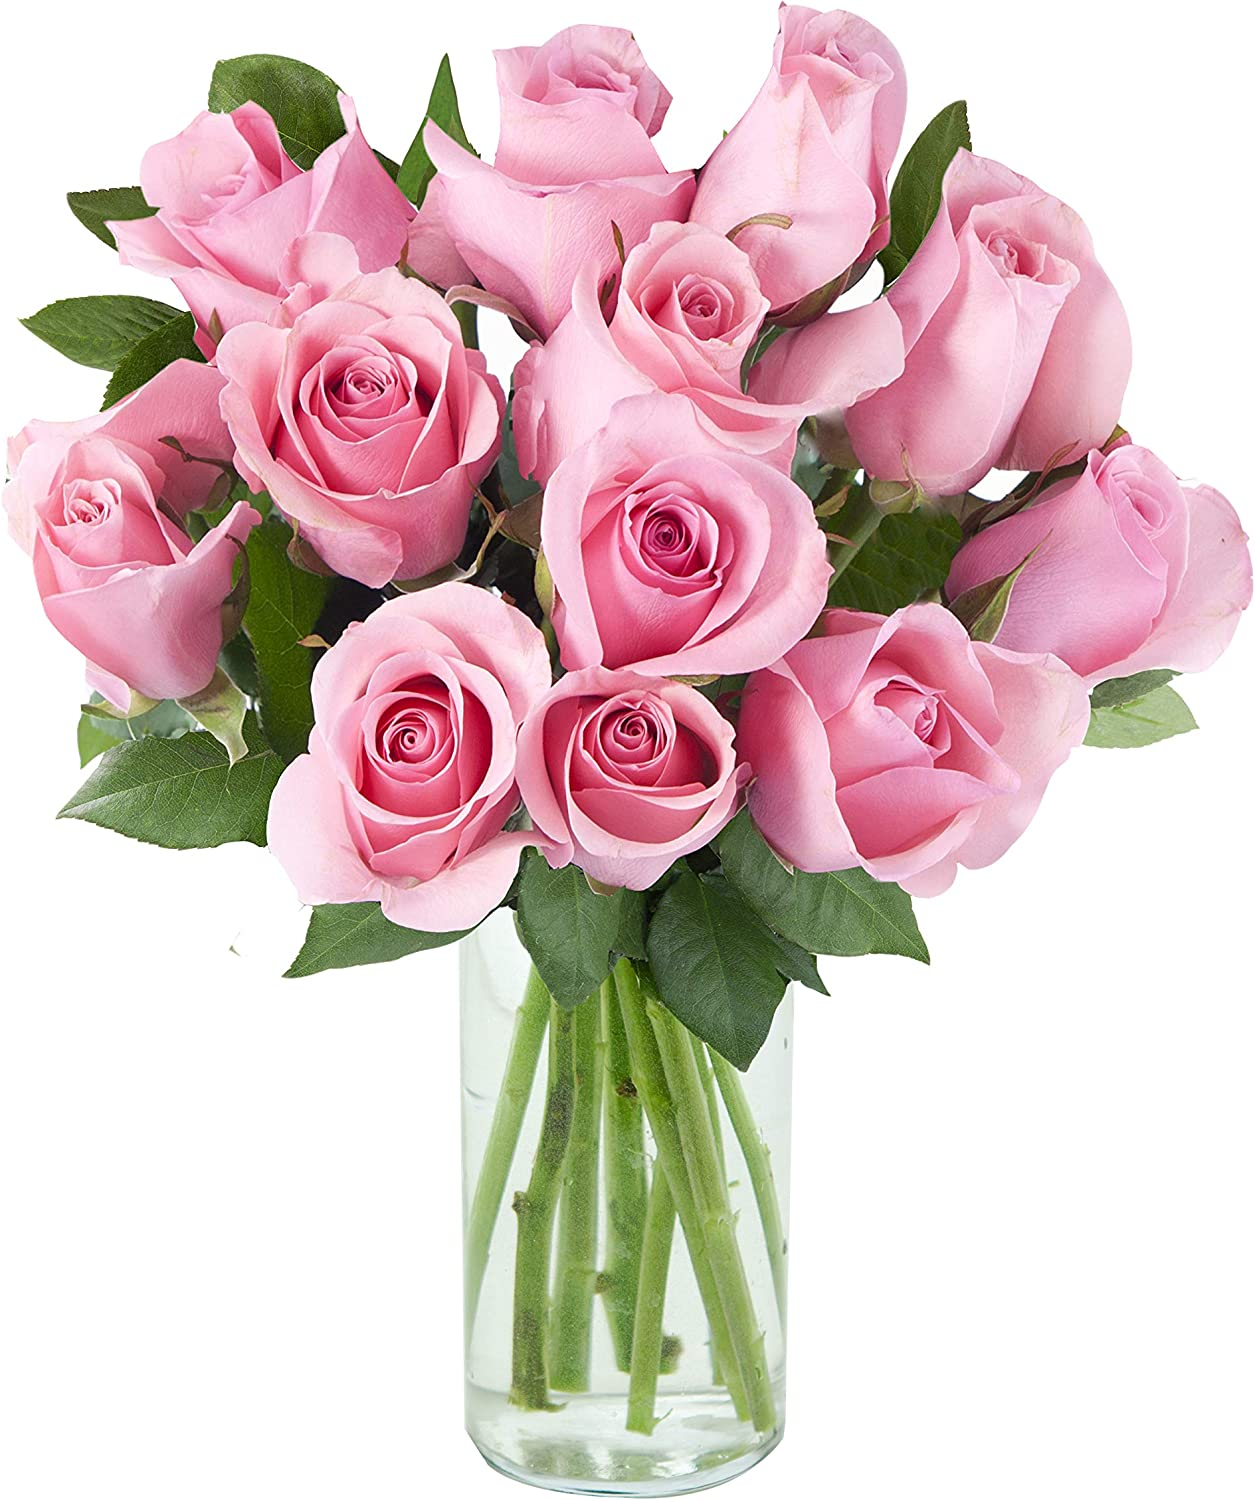 Arabella Bouquets | Purchase by 11.30 AM EST Wednesday | Delivery on Friday | Bouquet of 12 Fresh Cut Pink Roses 81DLRqbonNL